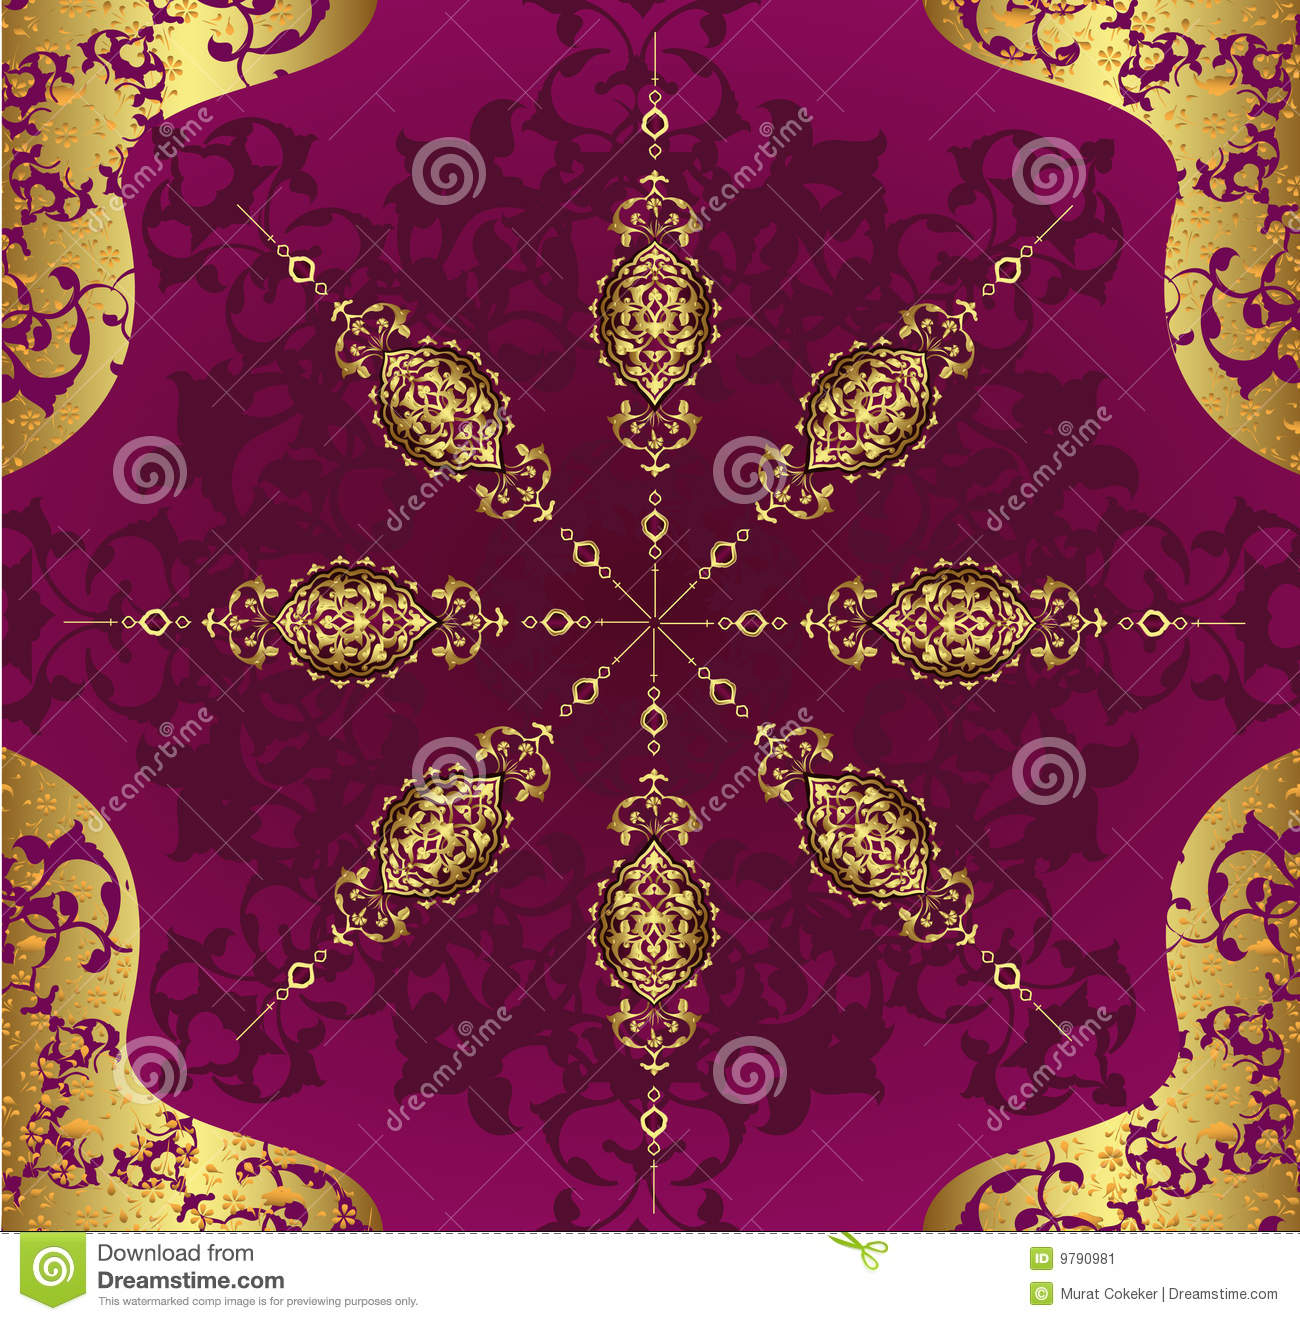 Turkish Design Wallpaper : Antique ottoman wallpaper illustration design stock image